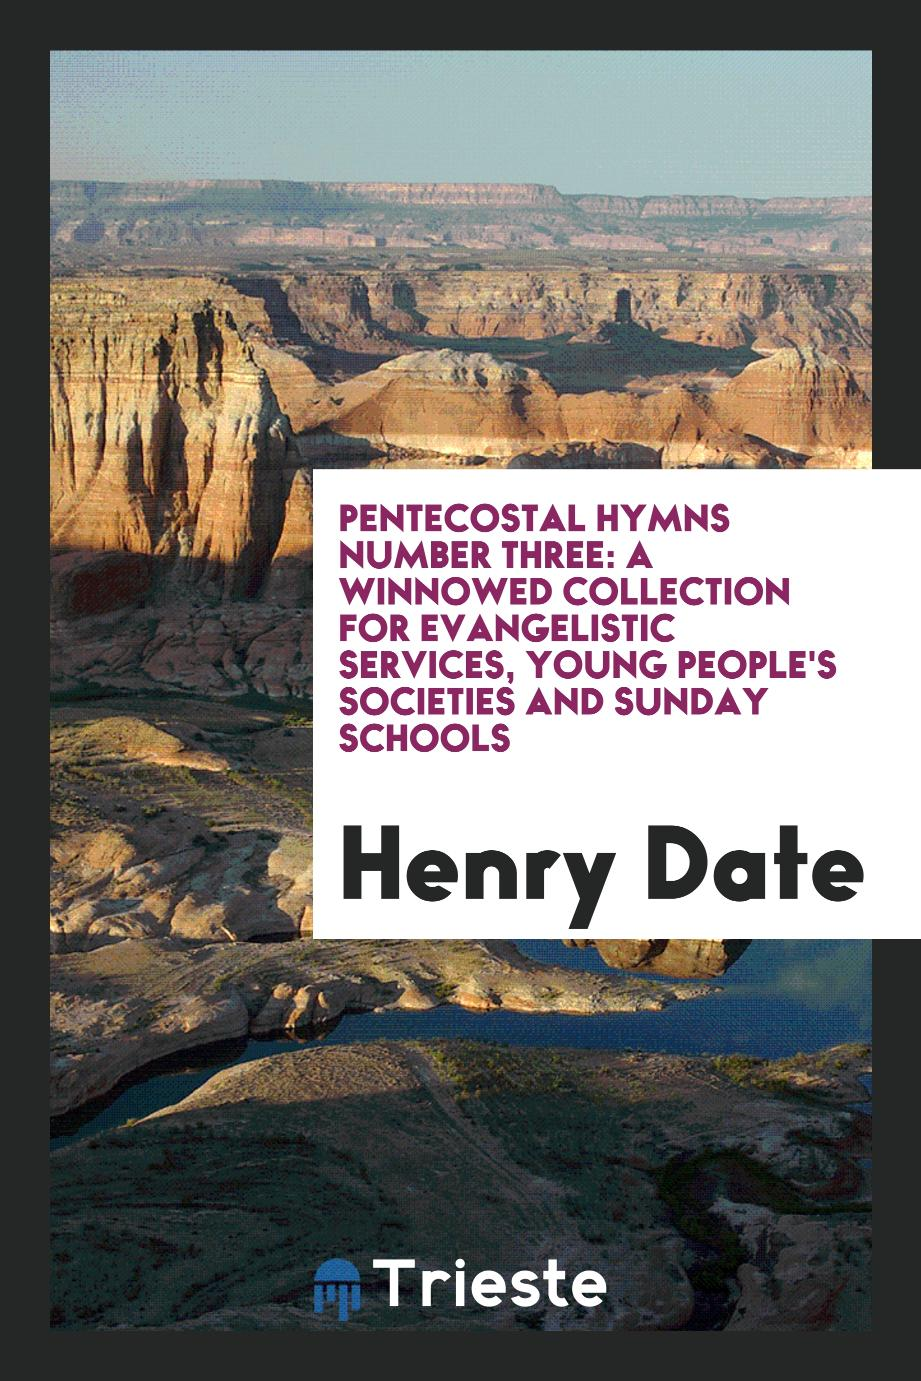 Pentecostal Hymns Number Three: A Winnowed Collection for Evangelistic Services, Young People's Societies and Sunday Schools